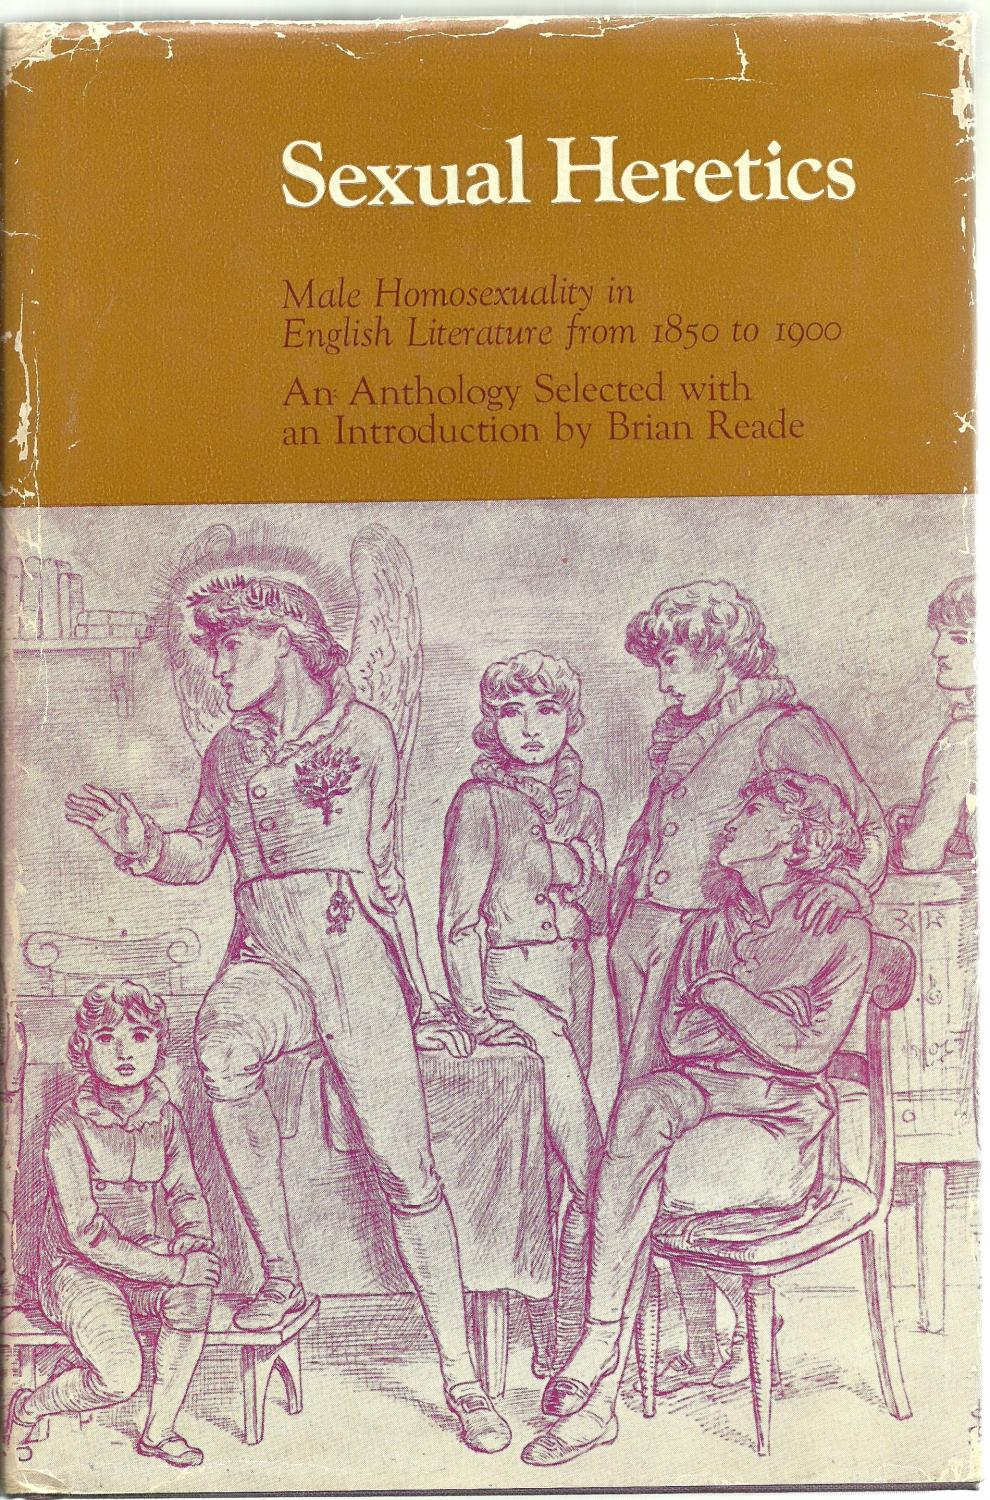 Sexual Heretics: Male Homosexuality in English Literature from 1850 to 1900.